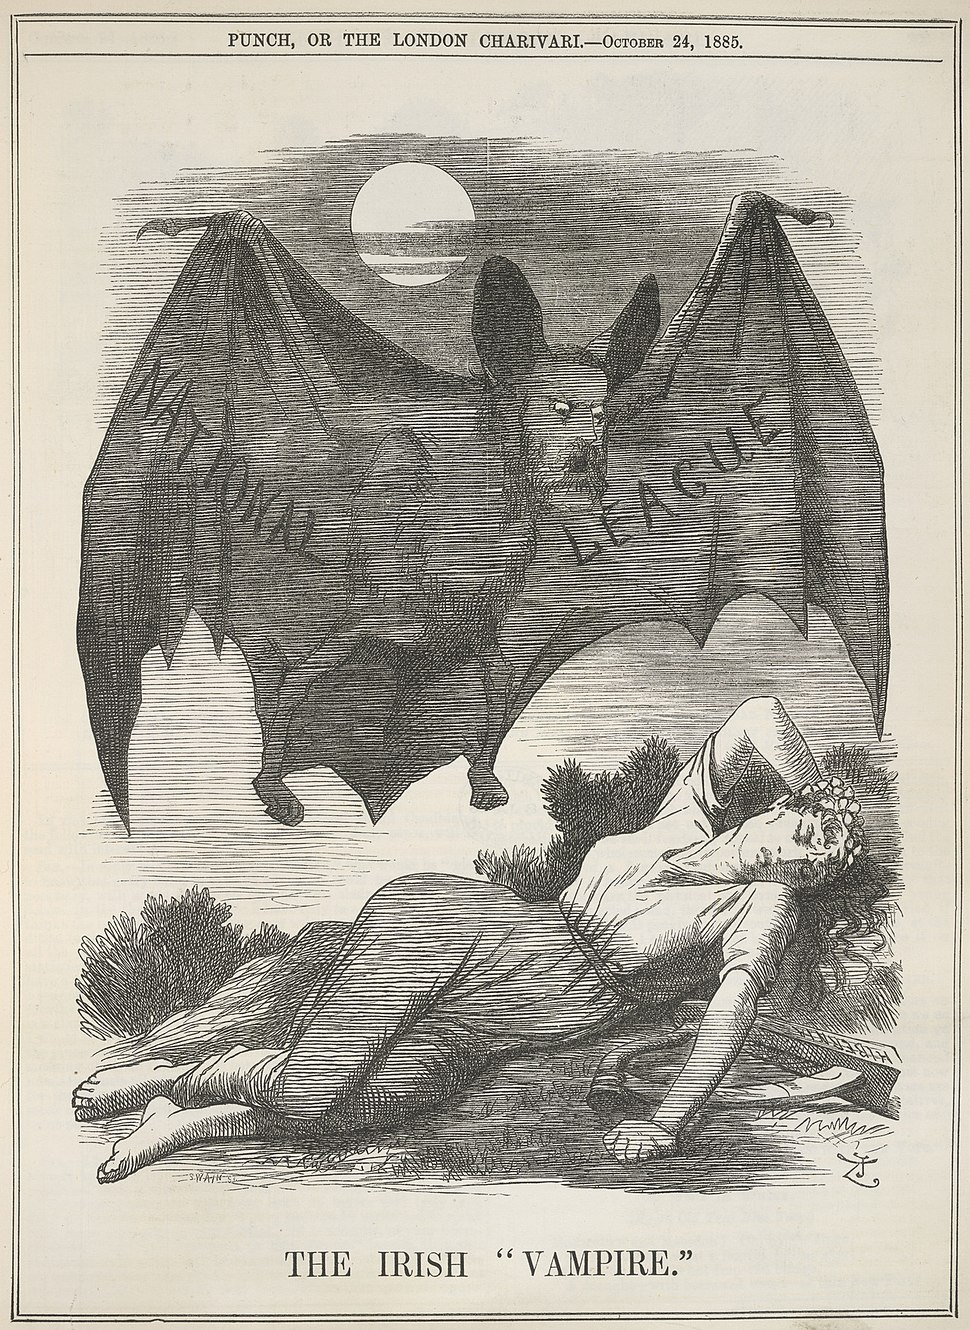 The Irish Vampire - Punch (24 October 1885), 199 - BL